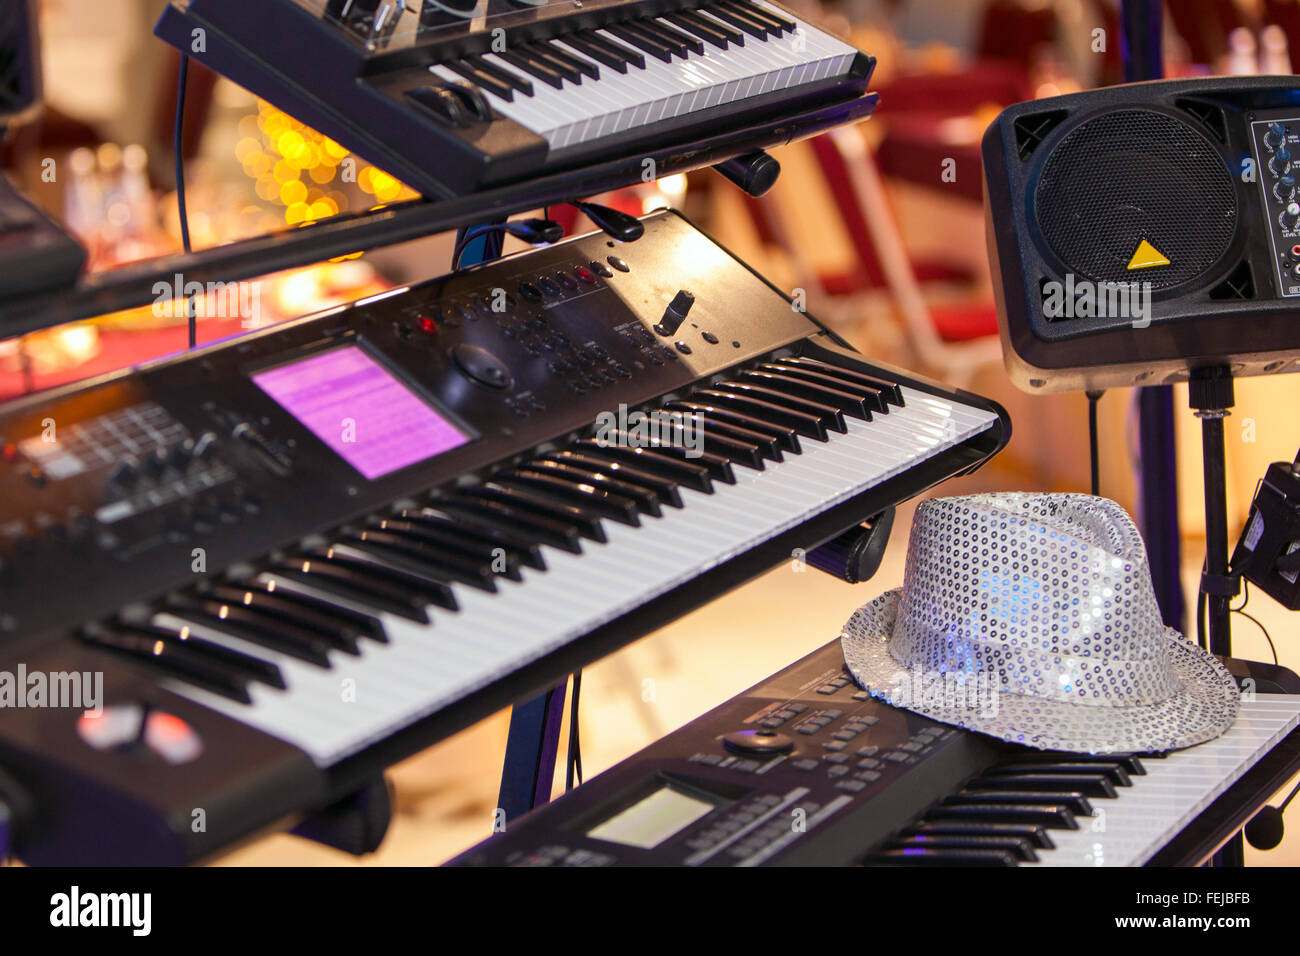 keyboard piano synthesizer for music background - Stock Image